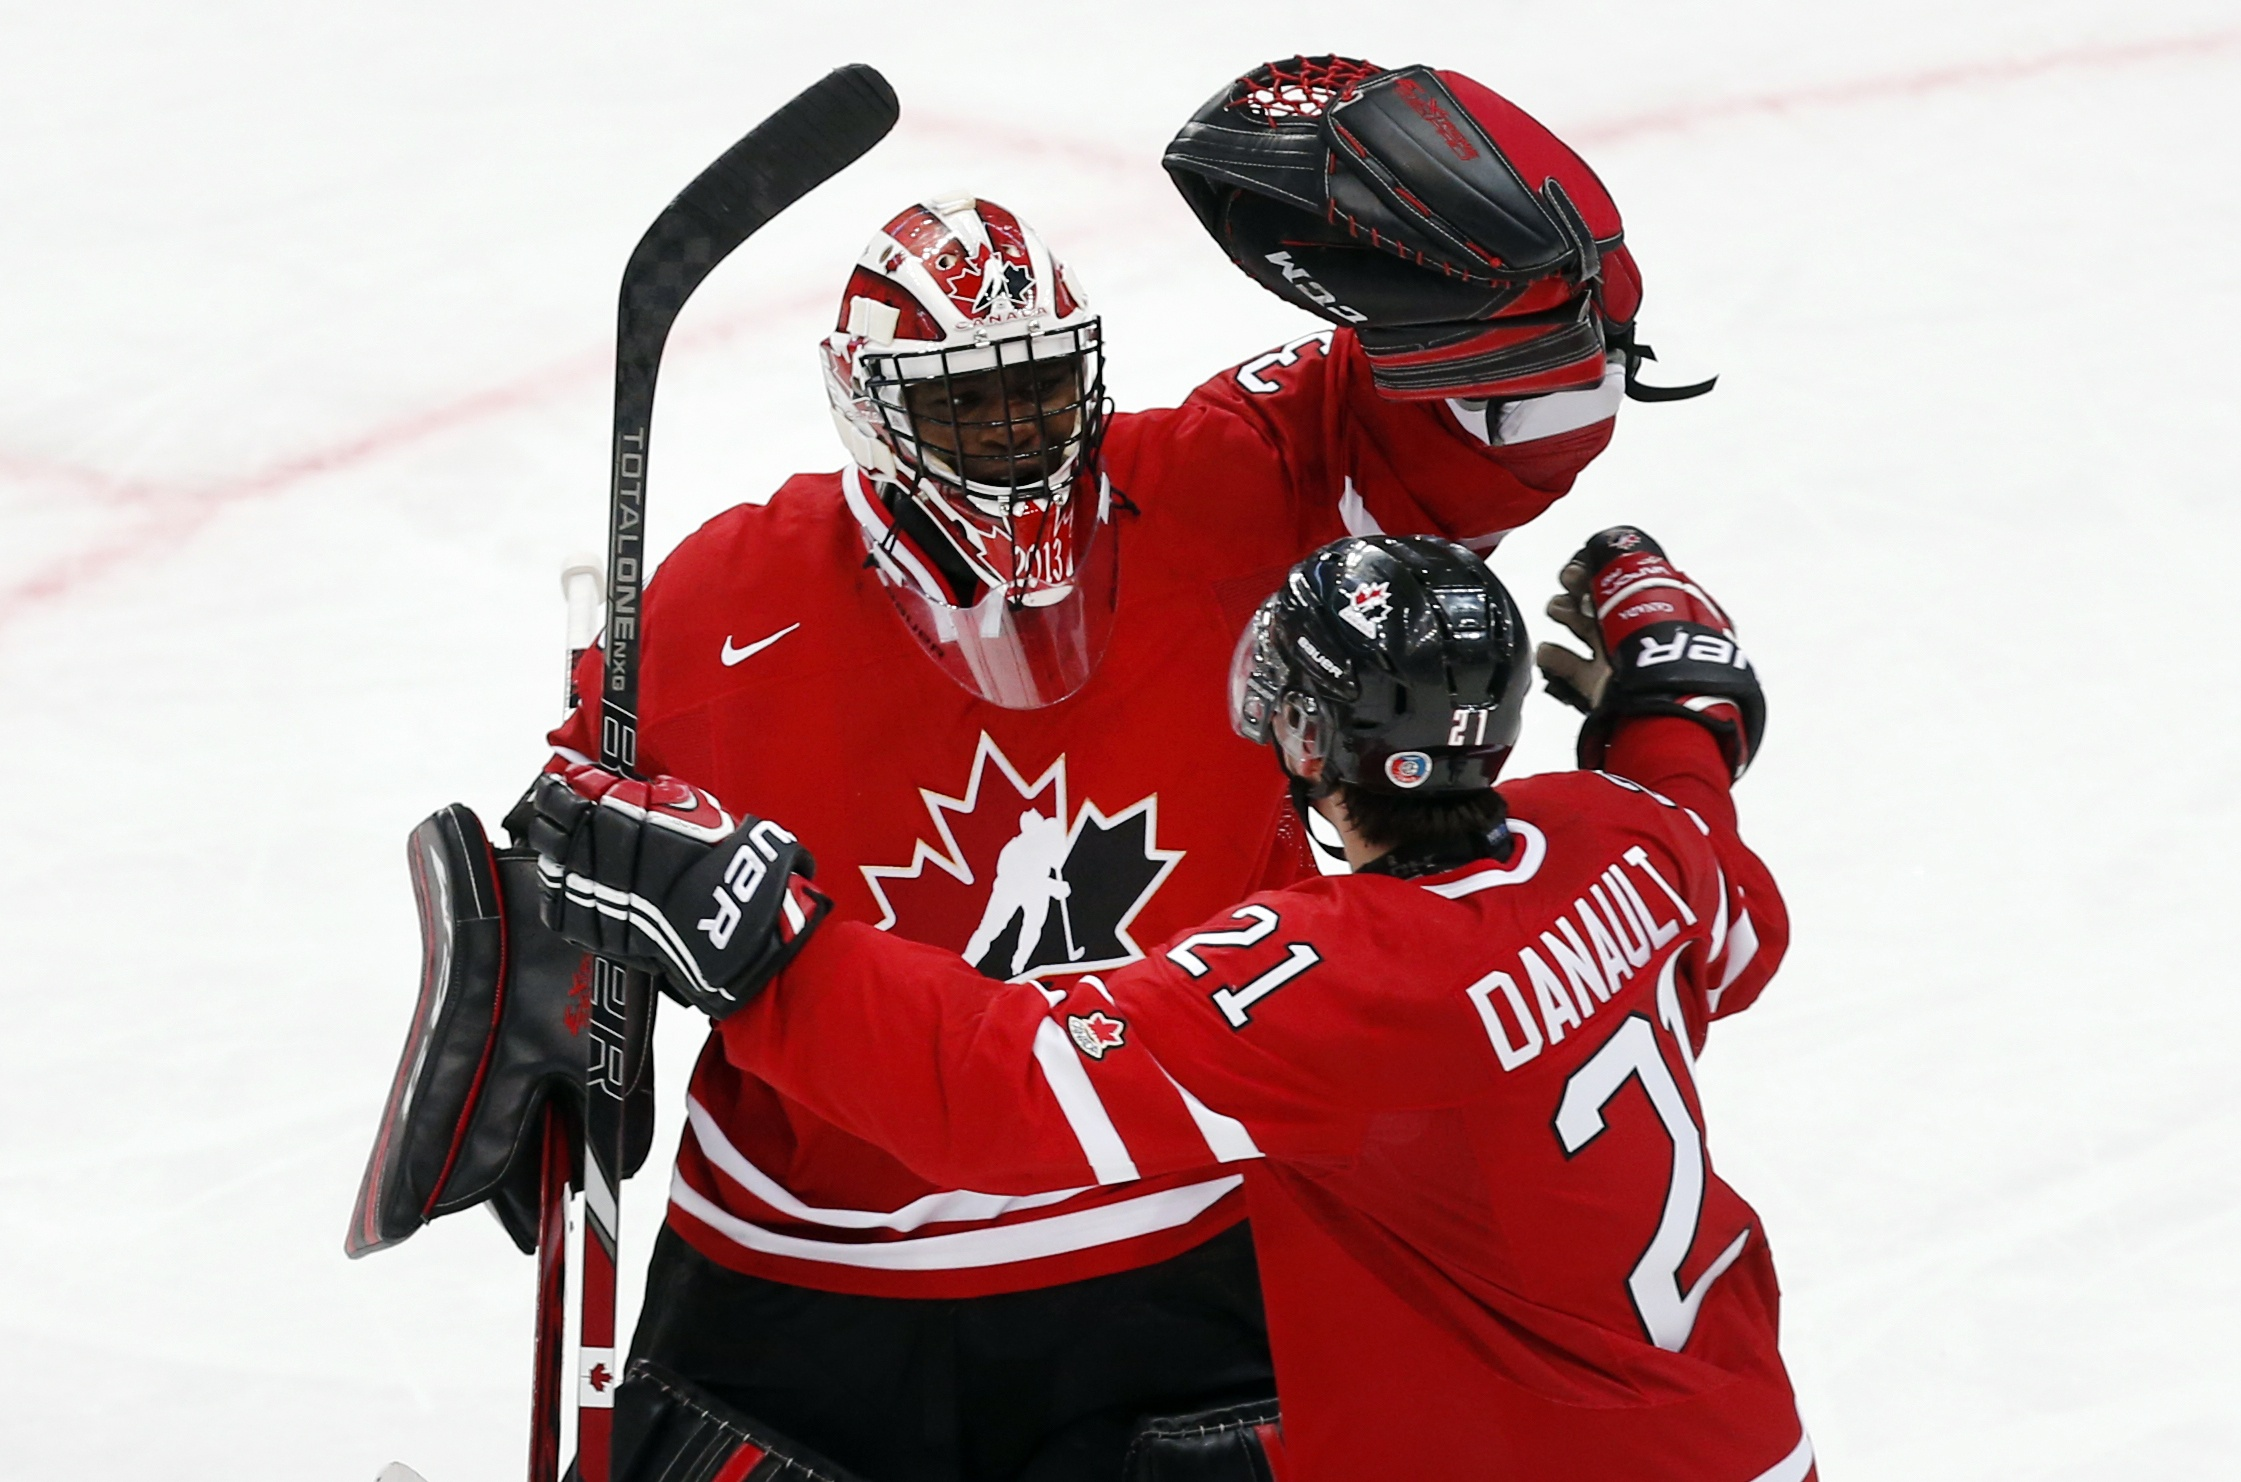 Canada's Malcolm Subban turned in his best game in beating Team USA. (Reuters)